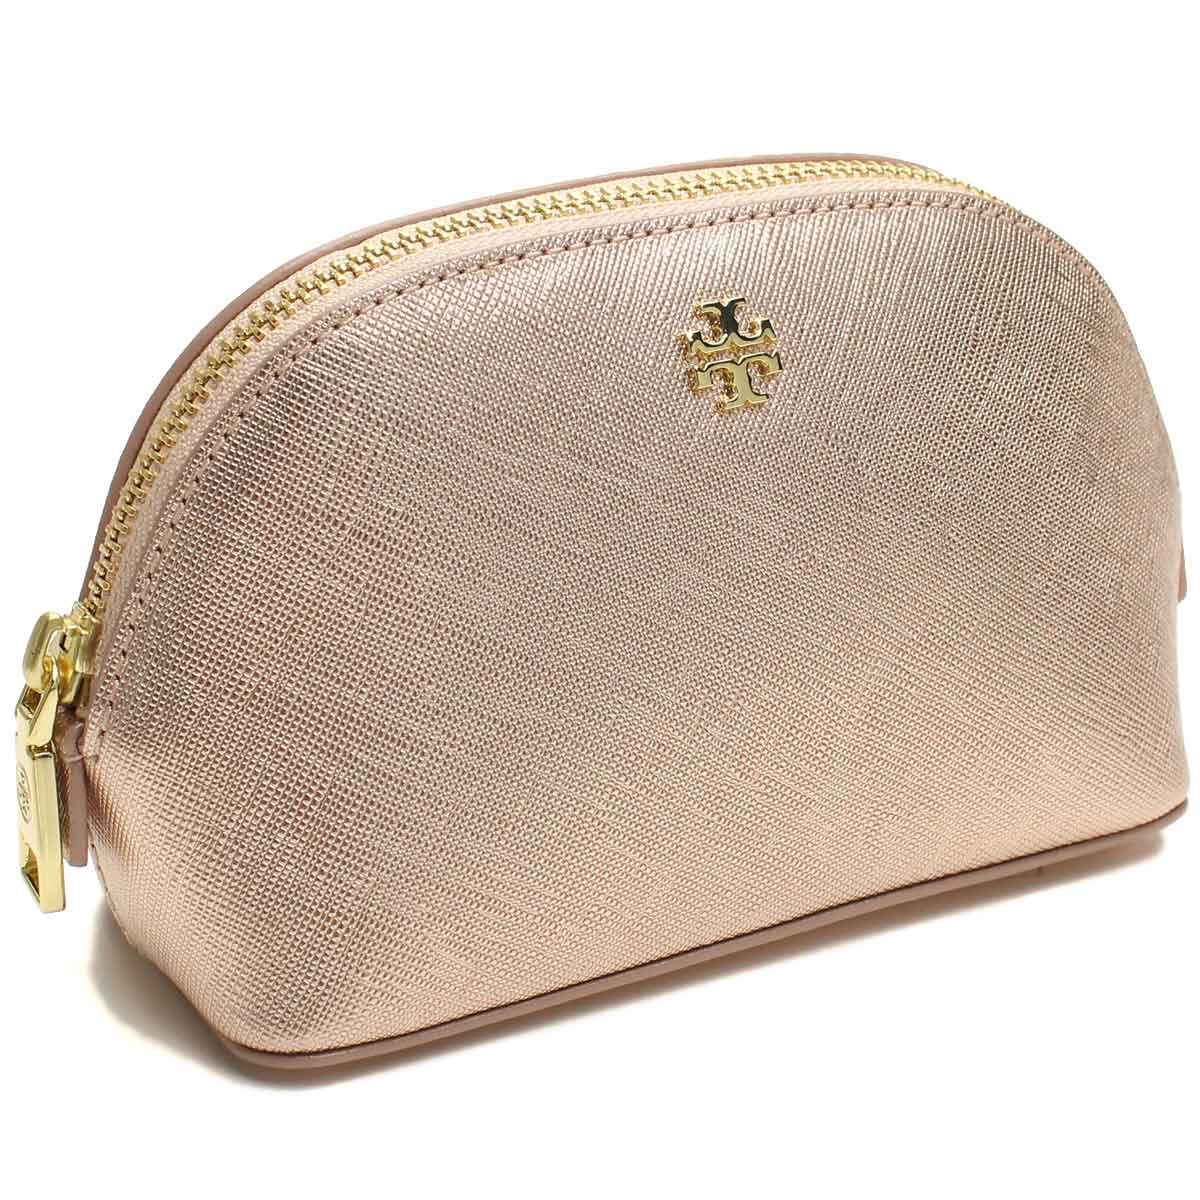 Tory burch makeup bag